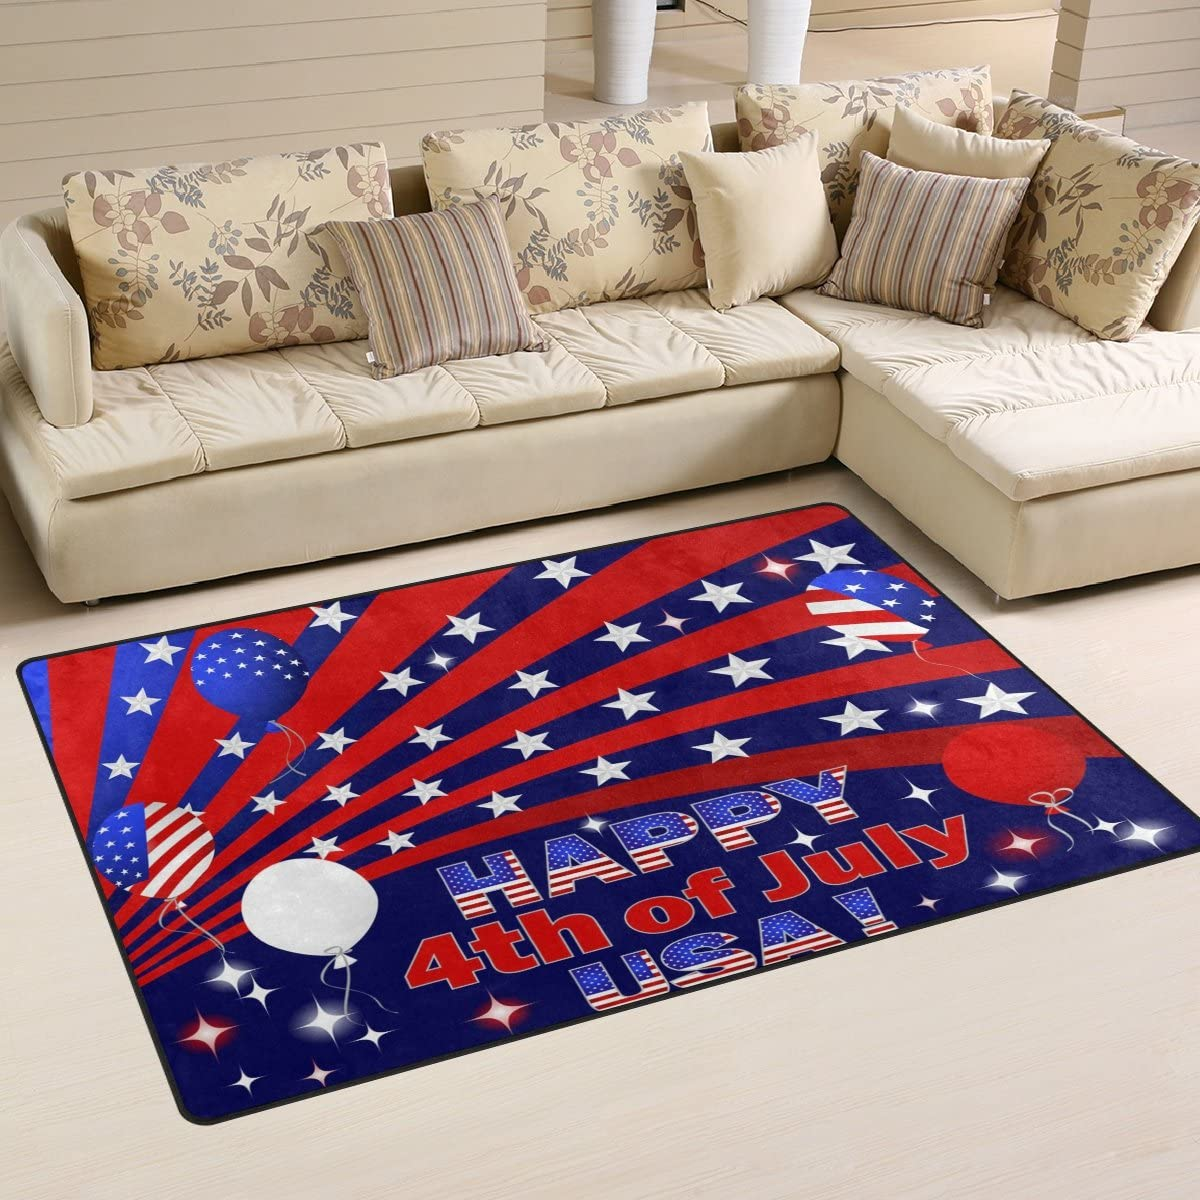 WOZO Happy 4th of July USA American Flag Balloon Area Rug Rugs Non-Slip Floor Mat Doormats Living Dining Room Bedroom Dorm 60 x 39 inches inches Home Decor